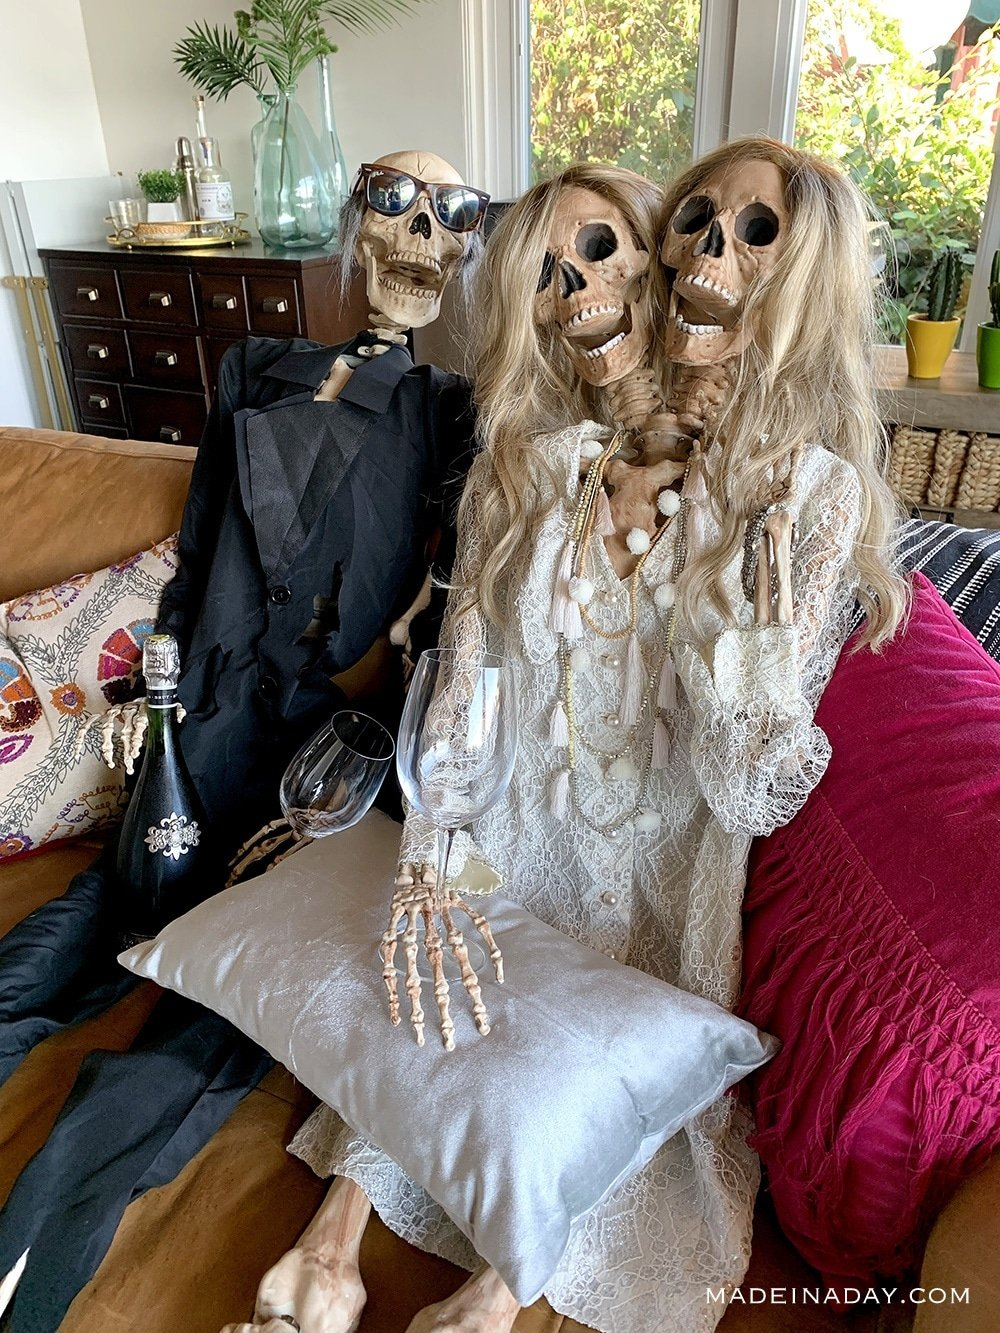 party girl two headed skeleton with guy skeleton, Bride Groom Halloween prop